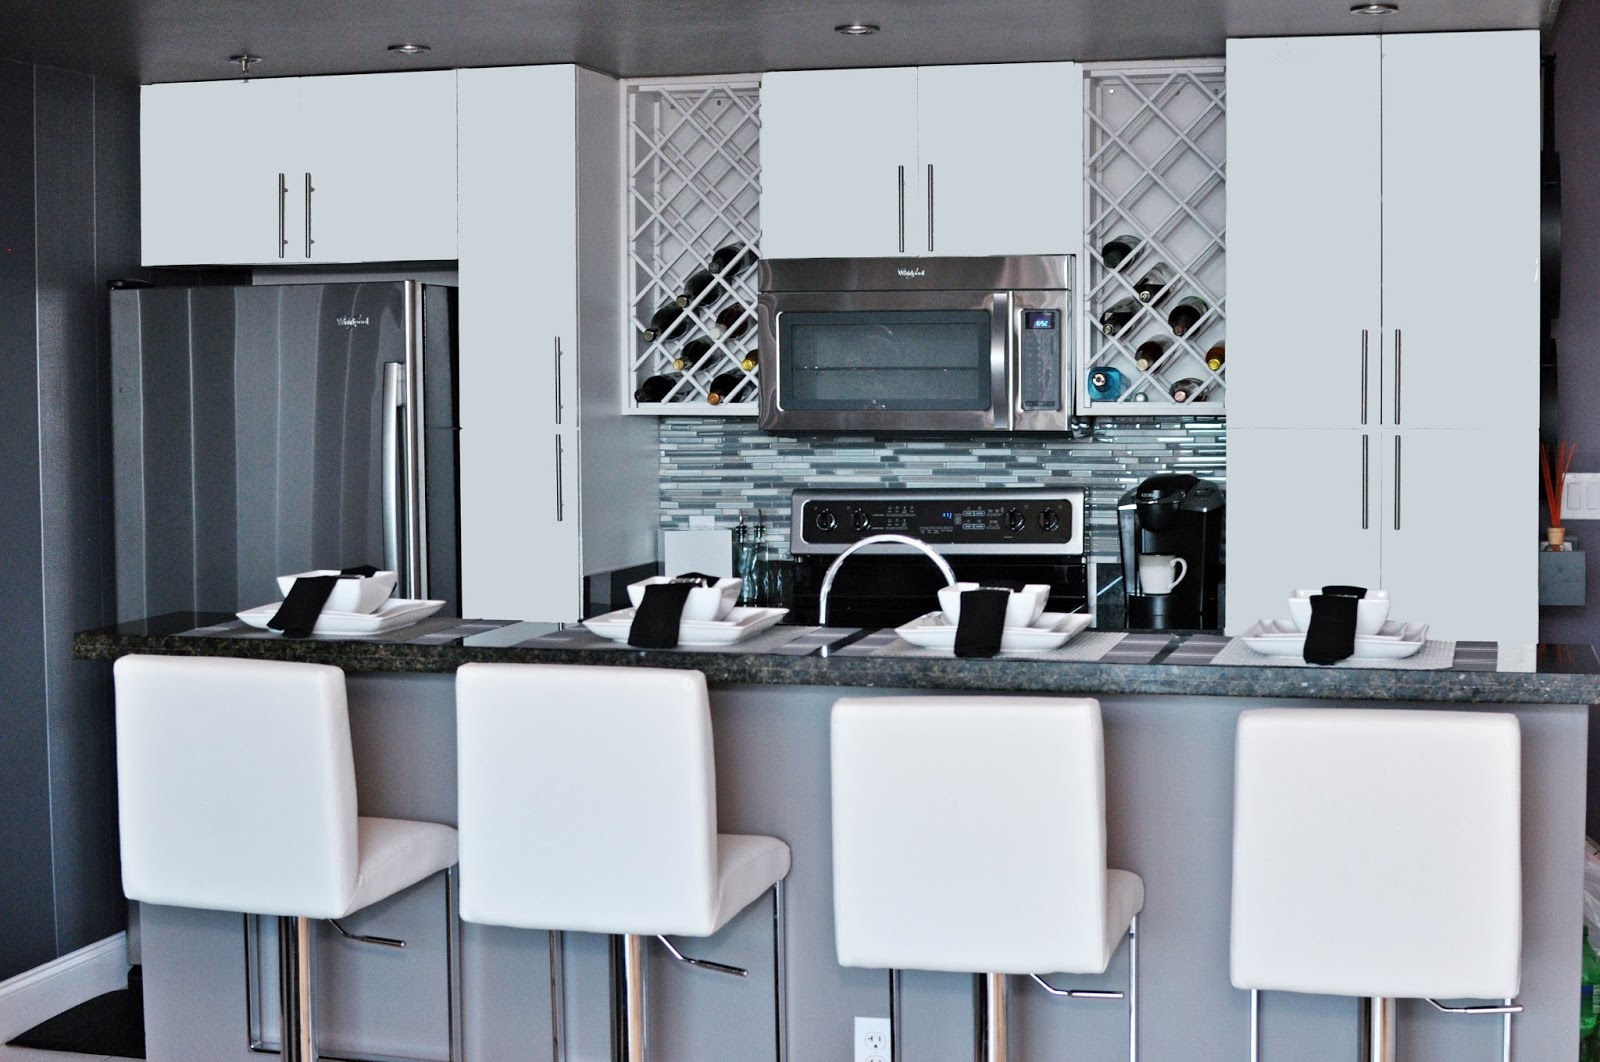 Live Laugh Decorate: Bachelor Pad - Part Two Kitchen